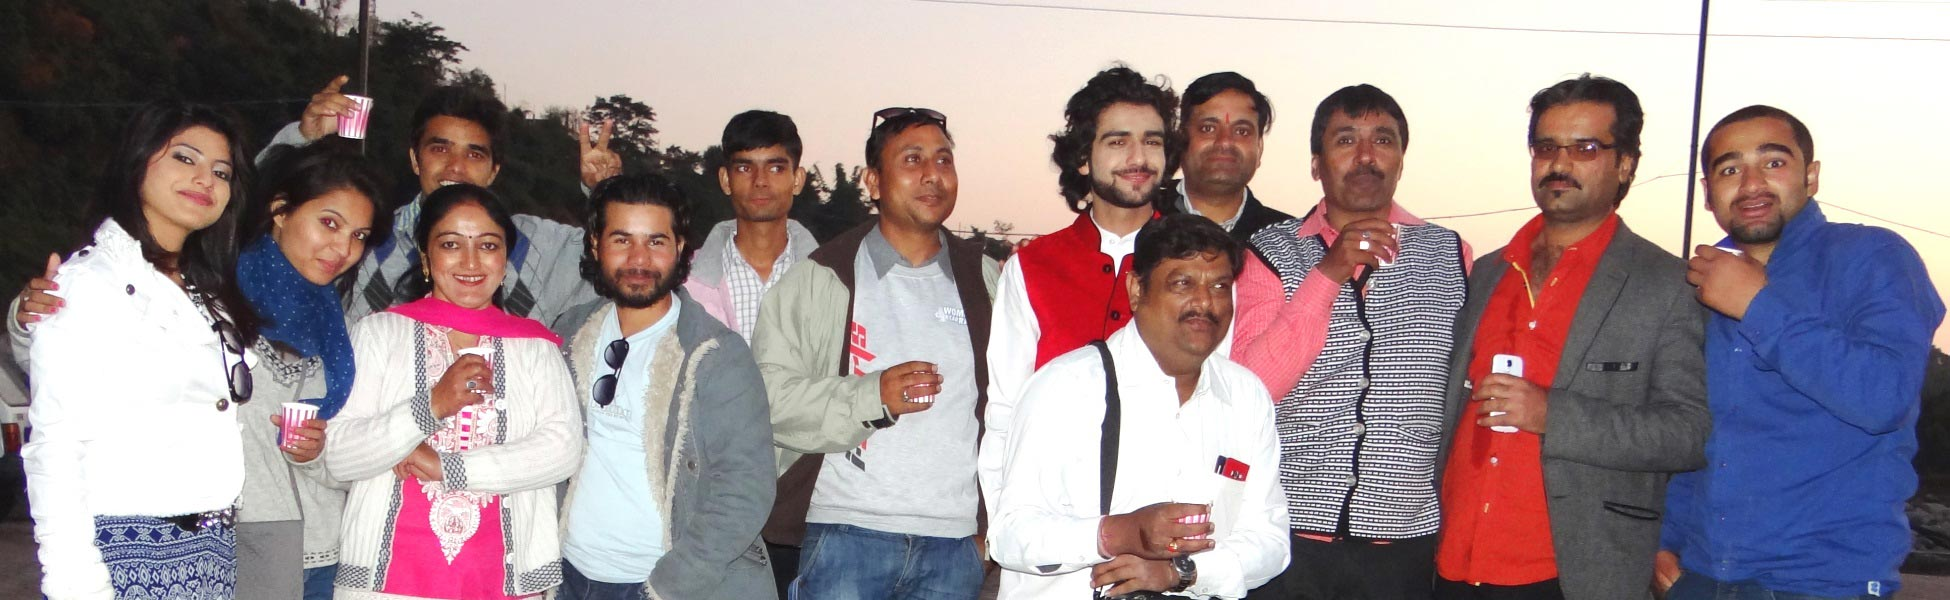 film shooting locations in india, film shooting locations in rajasthan, film shooting locations in udaipur, video shooting locations in india, video shooting locations in rajasthan, video shooting locations in udaipur, tv shooting locations in india, tv shooting locations in rajasthan, tv shooting locations in udaipur, shooting locations in india, shooting locations in rajasthan, shooting locations in udaipur